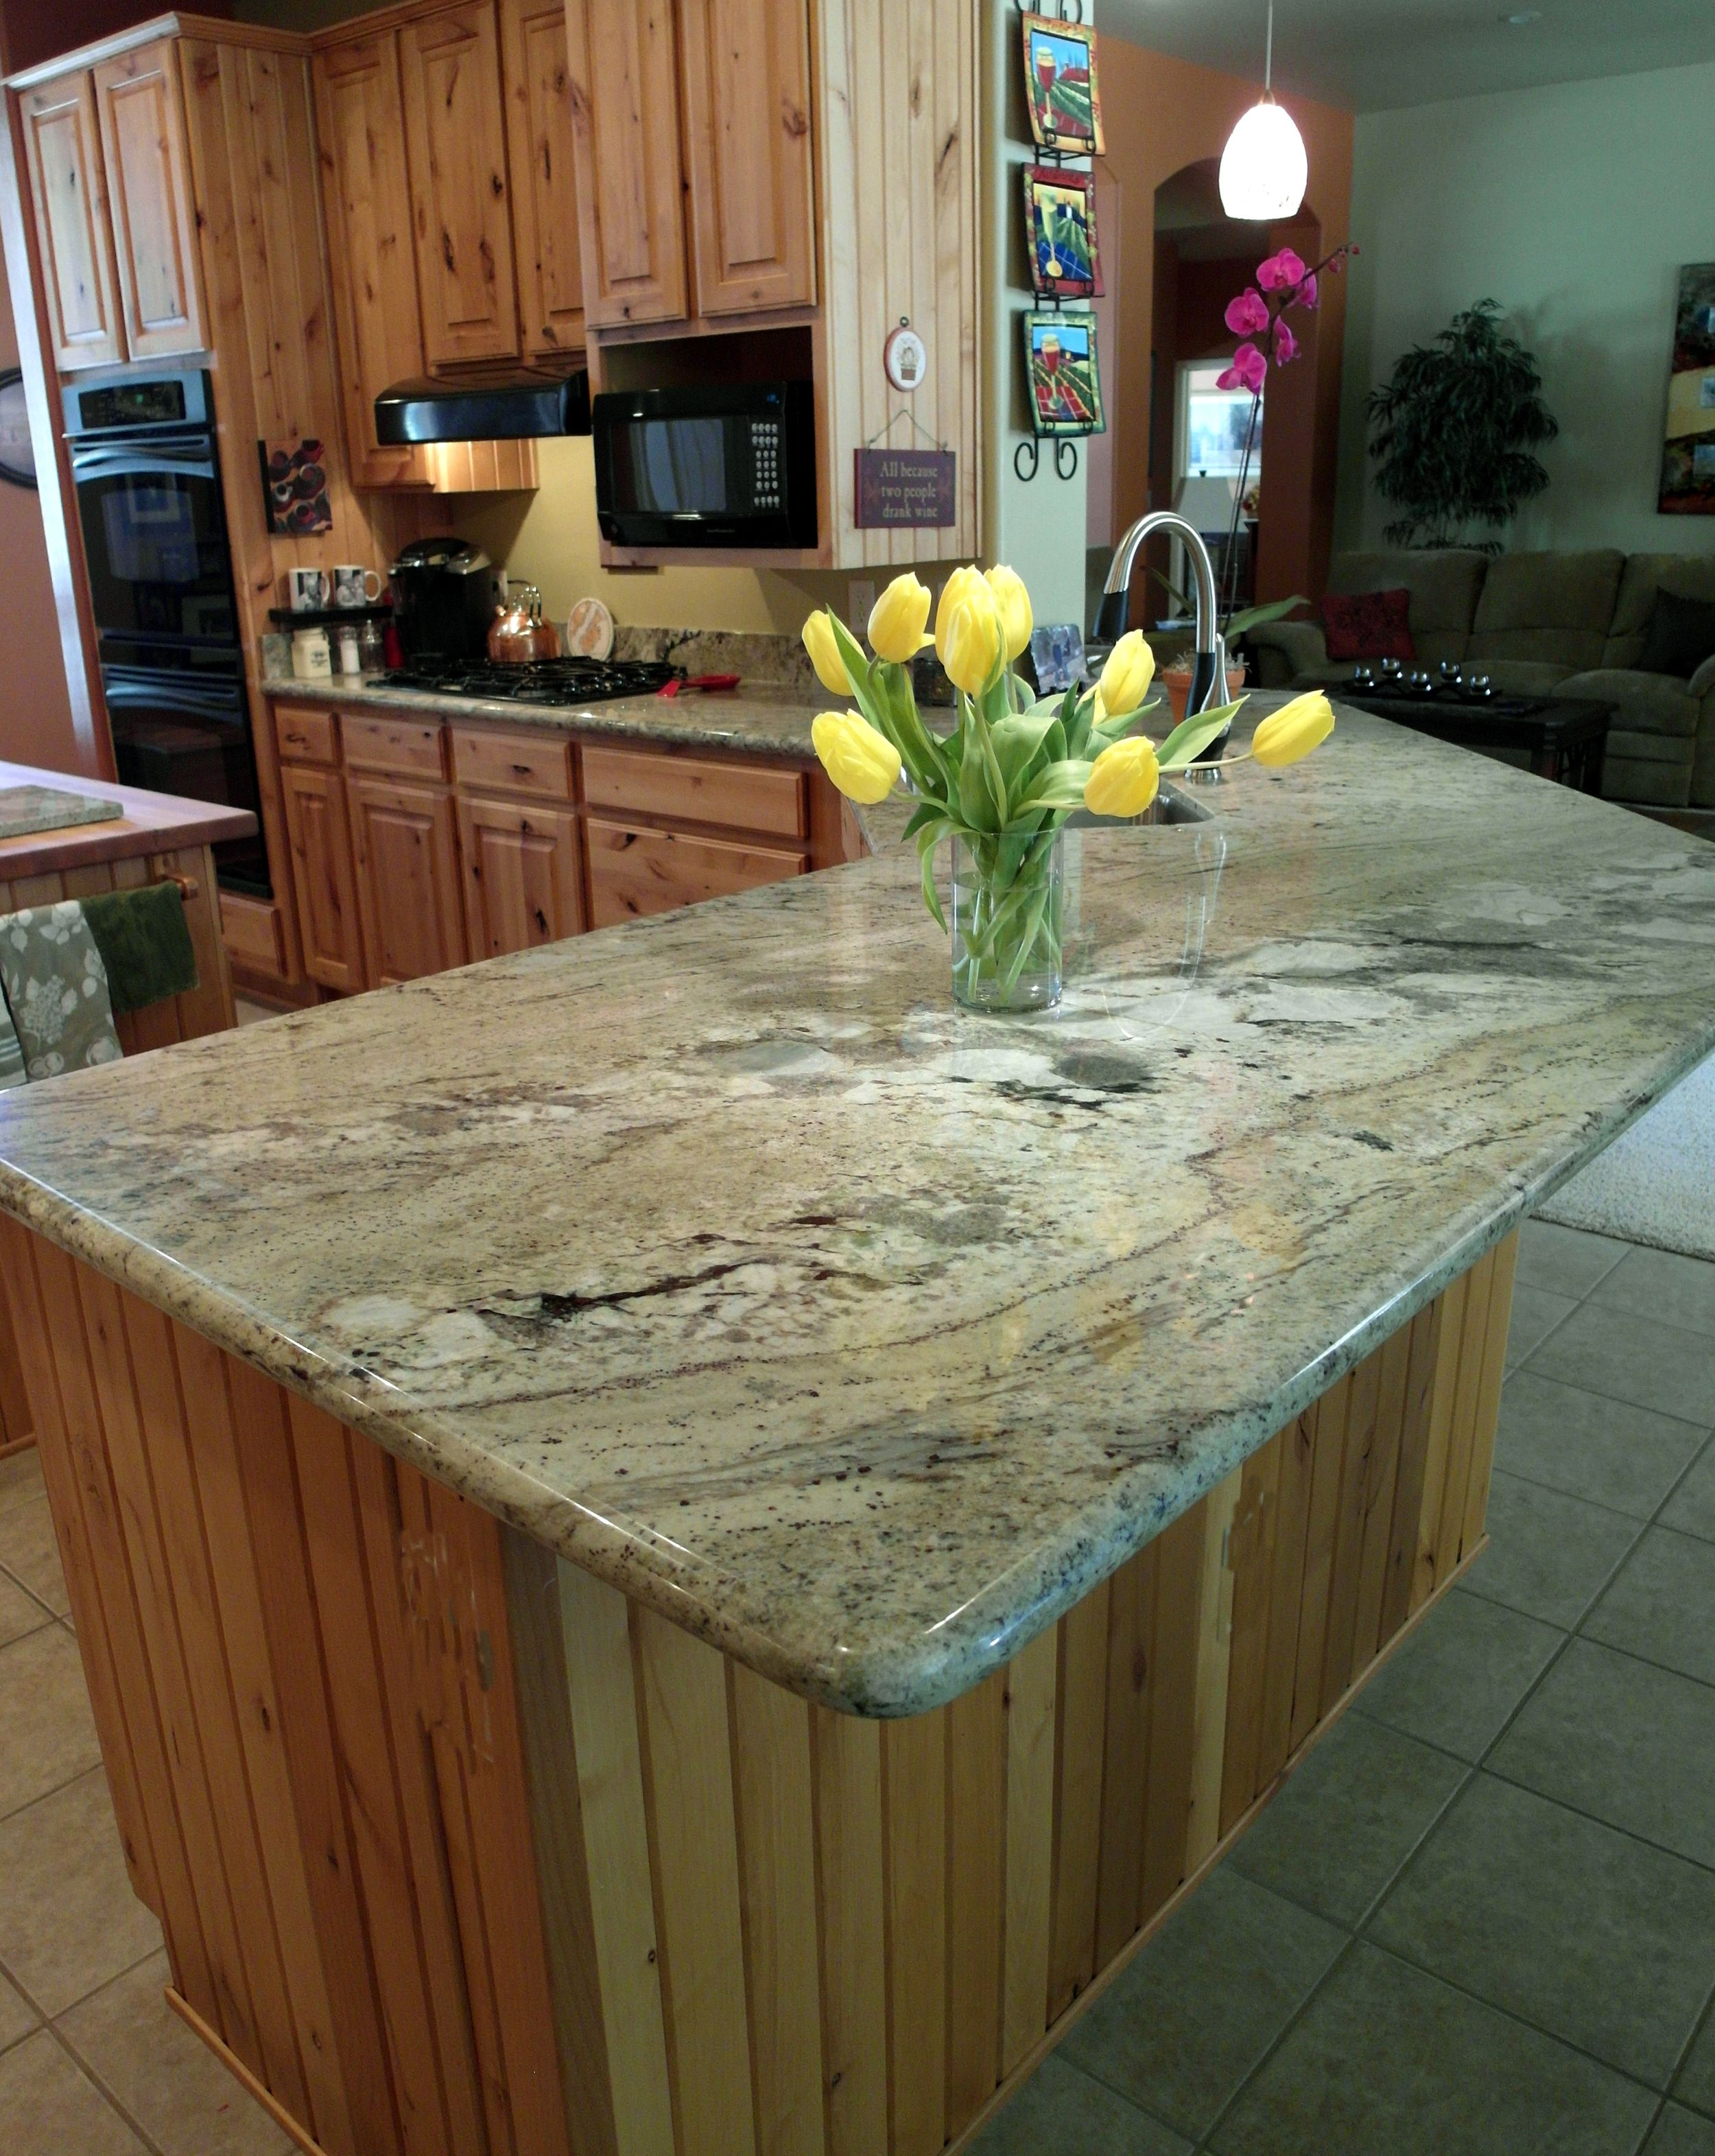 and other buy custom countertops fireplace granite products countertop stone supports hearth portfolio